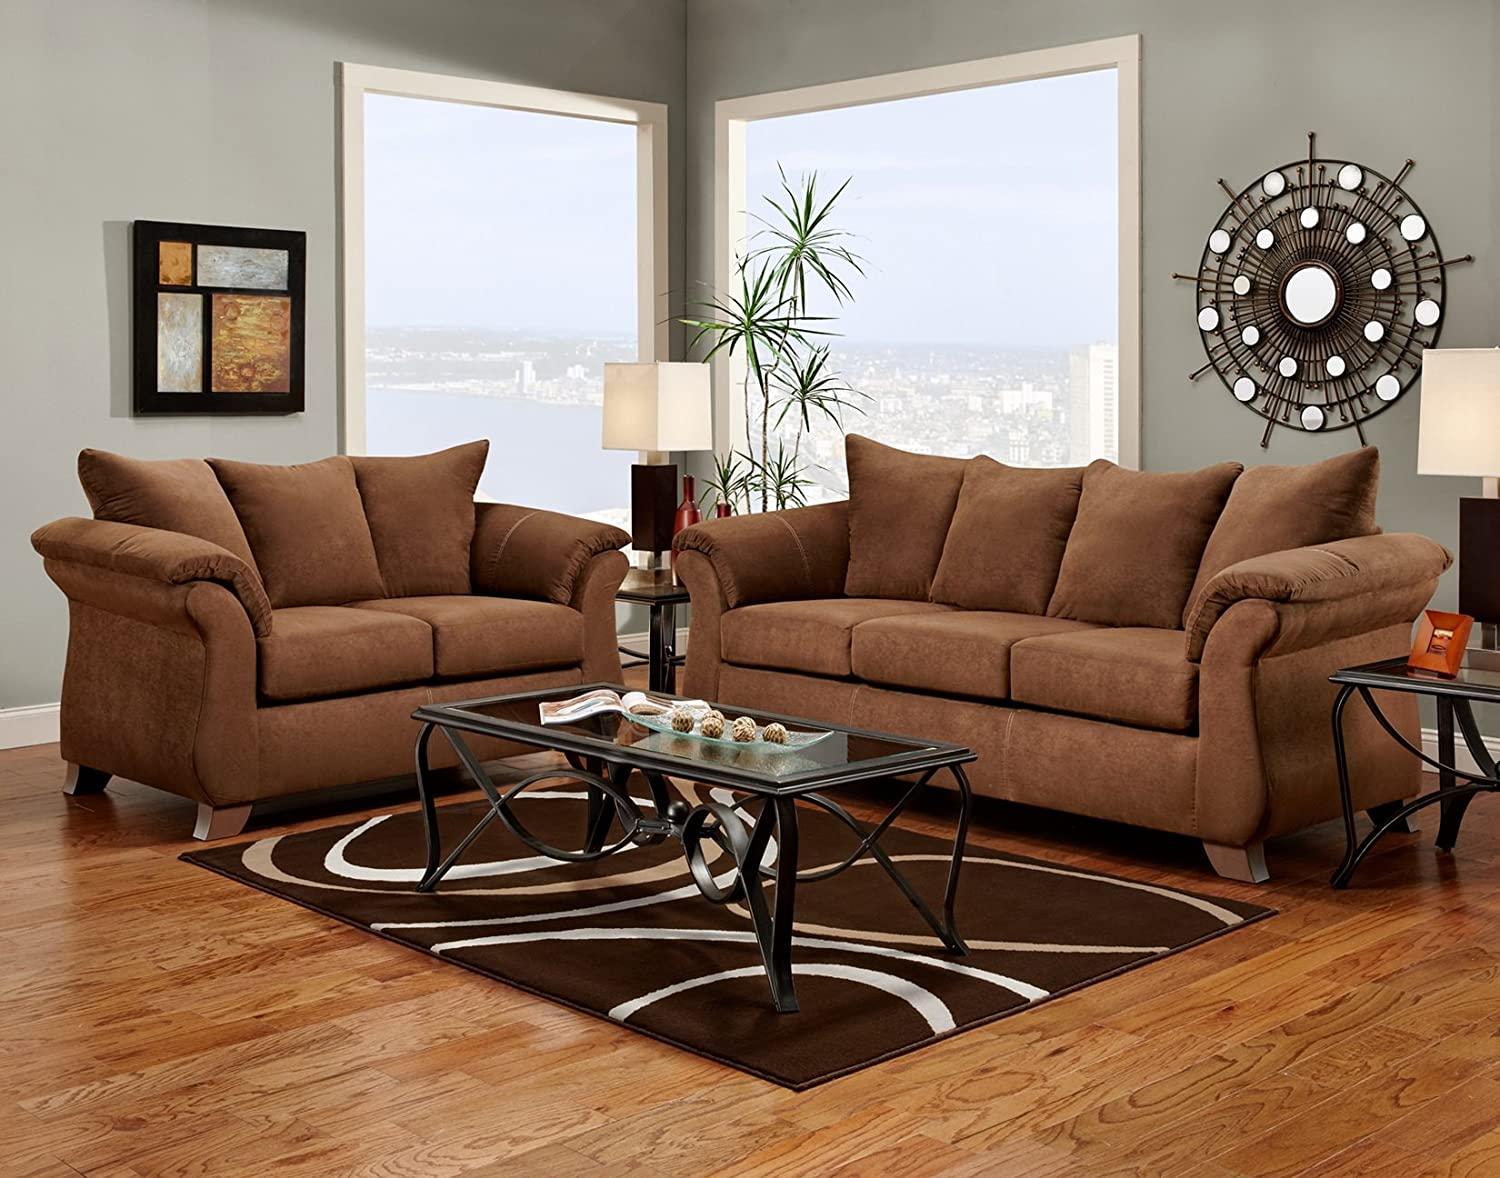 Good Amazon.com: Roundhill Furniture Aruba Microfiber Pillow Back Sofa And Loveseat  Set, Chocolate: Kitchen U0026 Dining